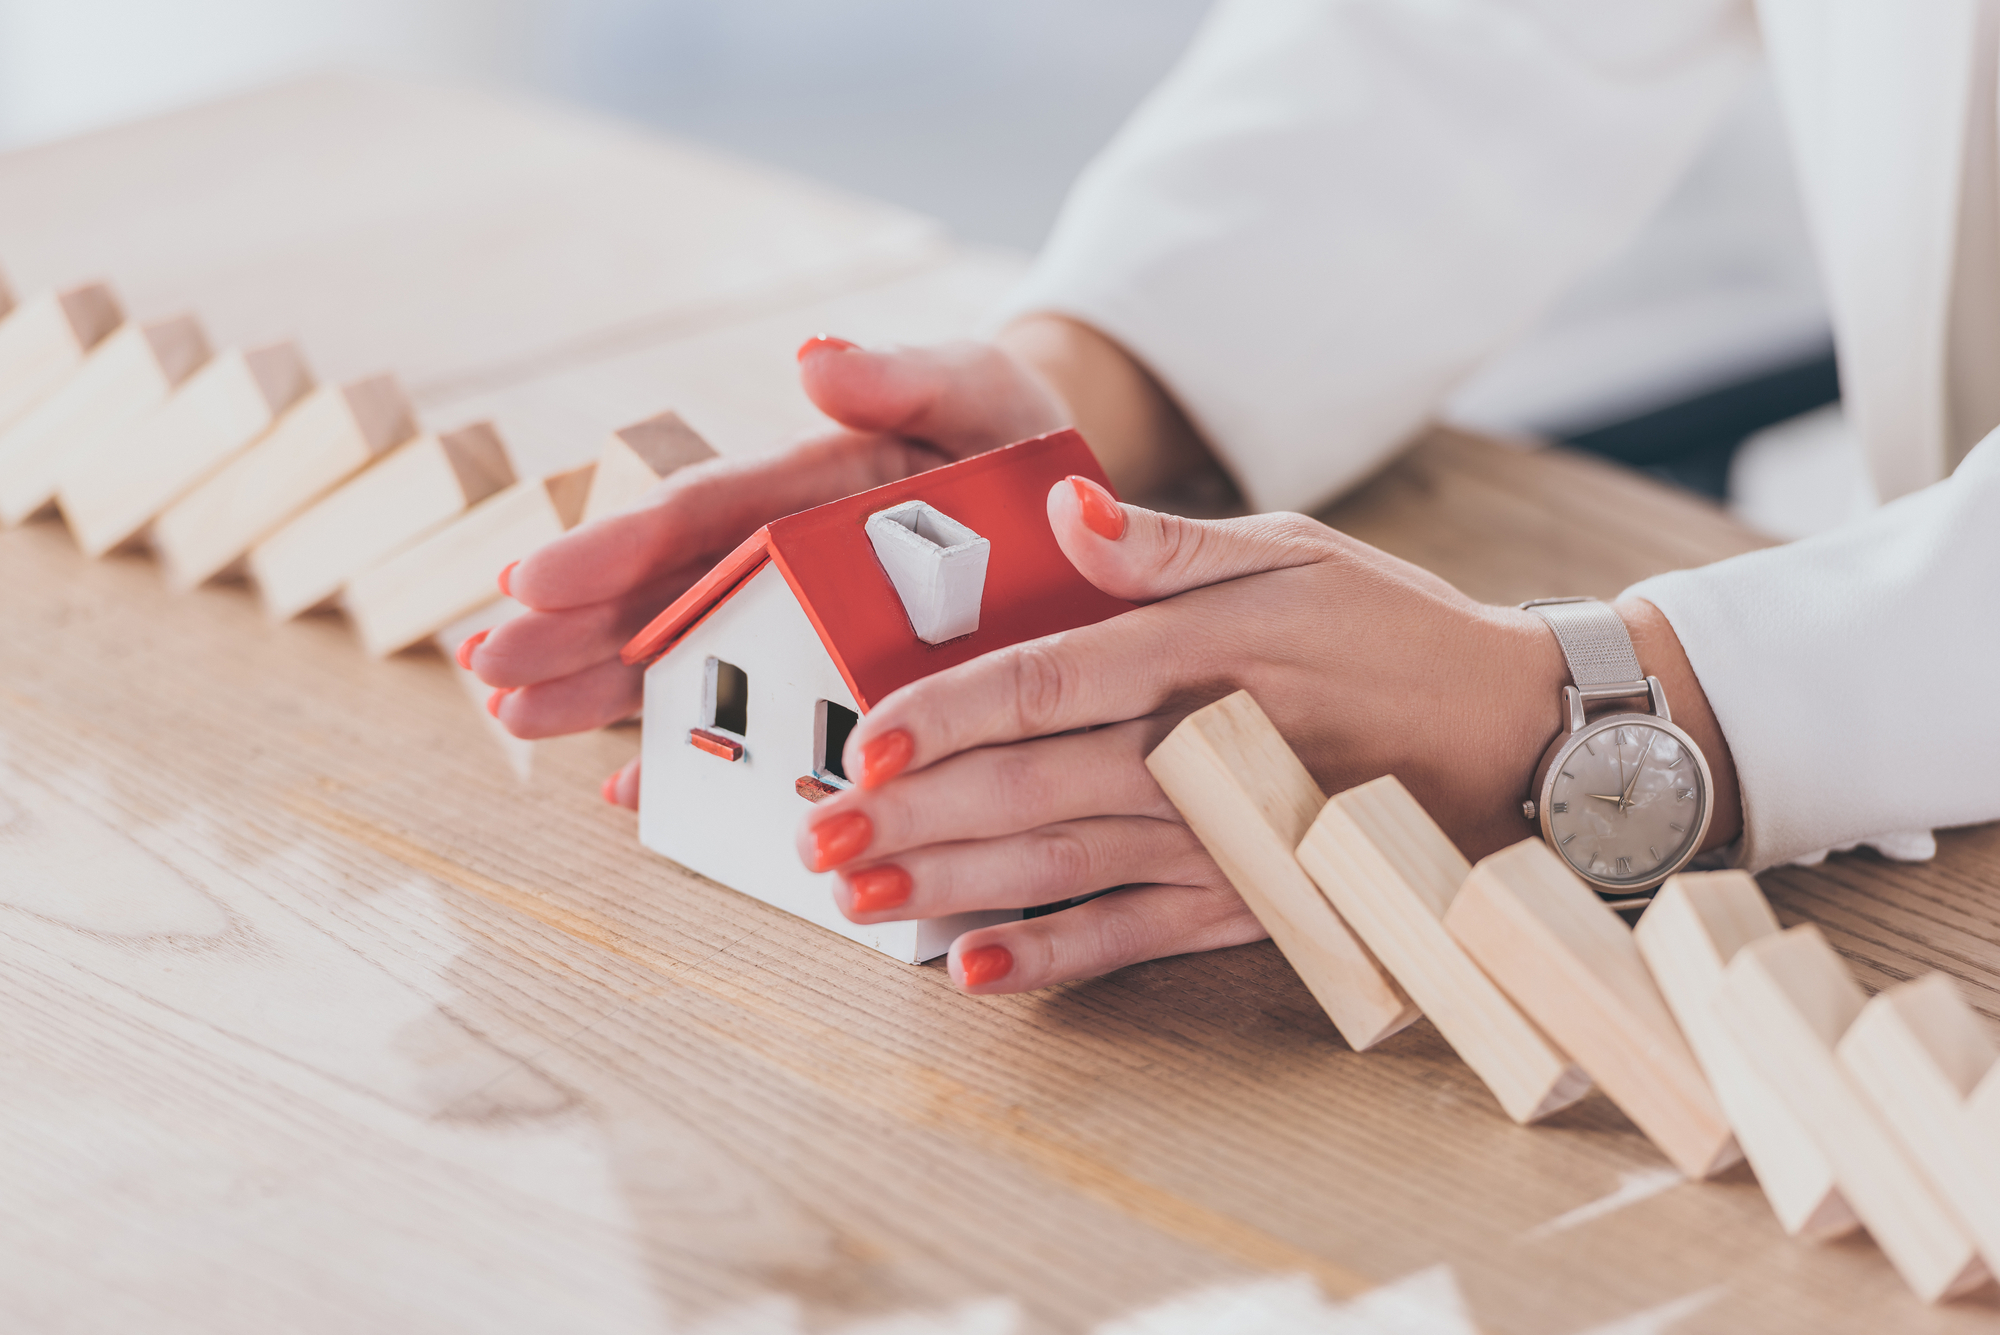 Cropped view of risk manager protecting house model from falling wooden blocks with hands